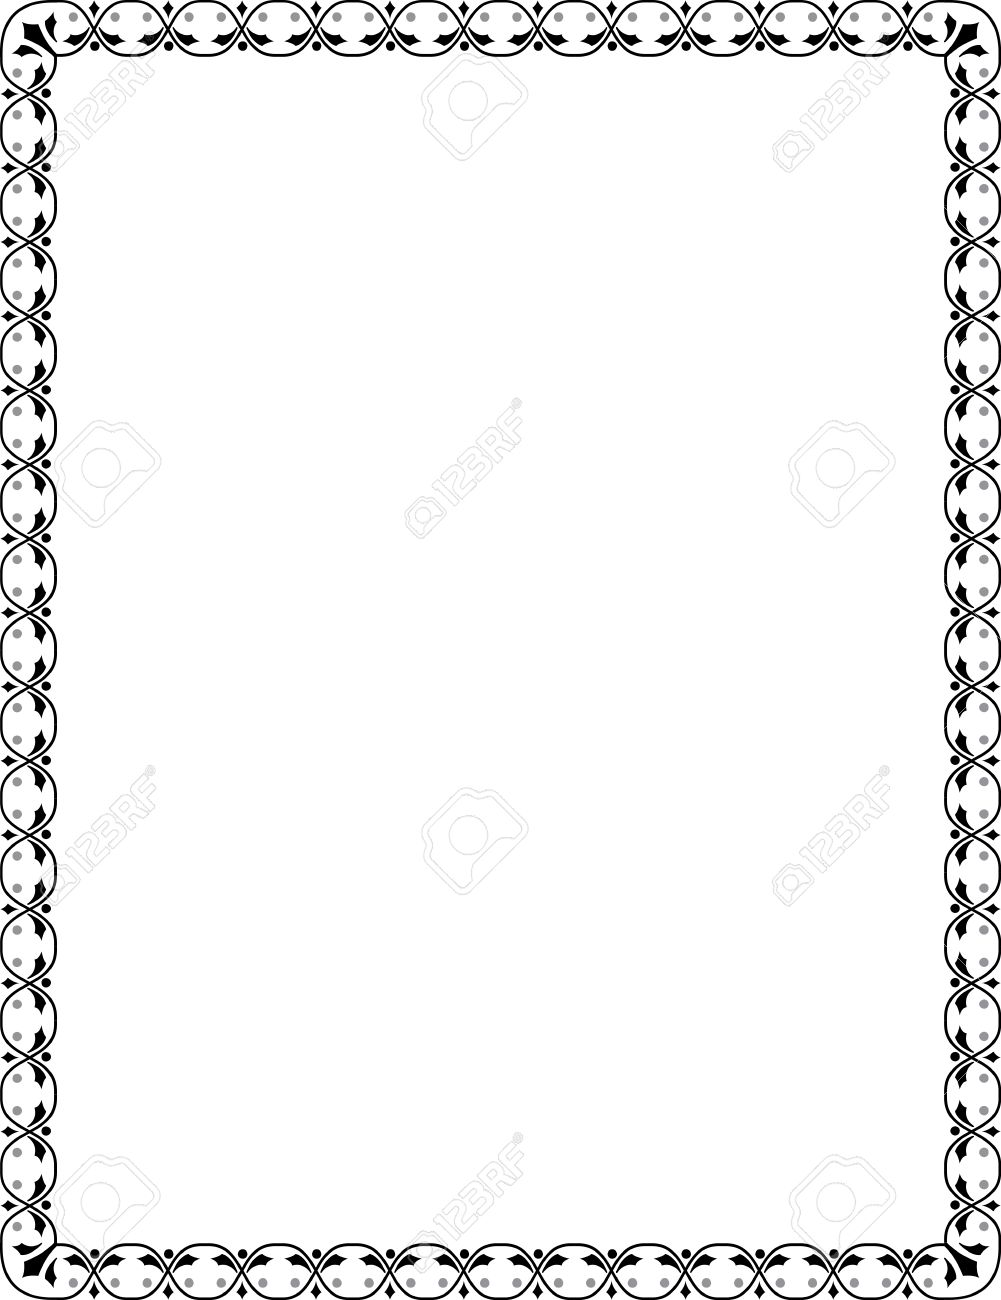 Ornamental Border Frame, In Editable Vector File, Black And White ...